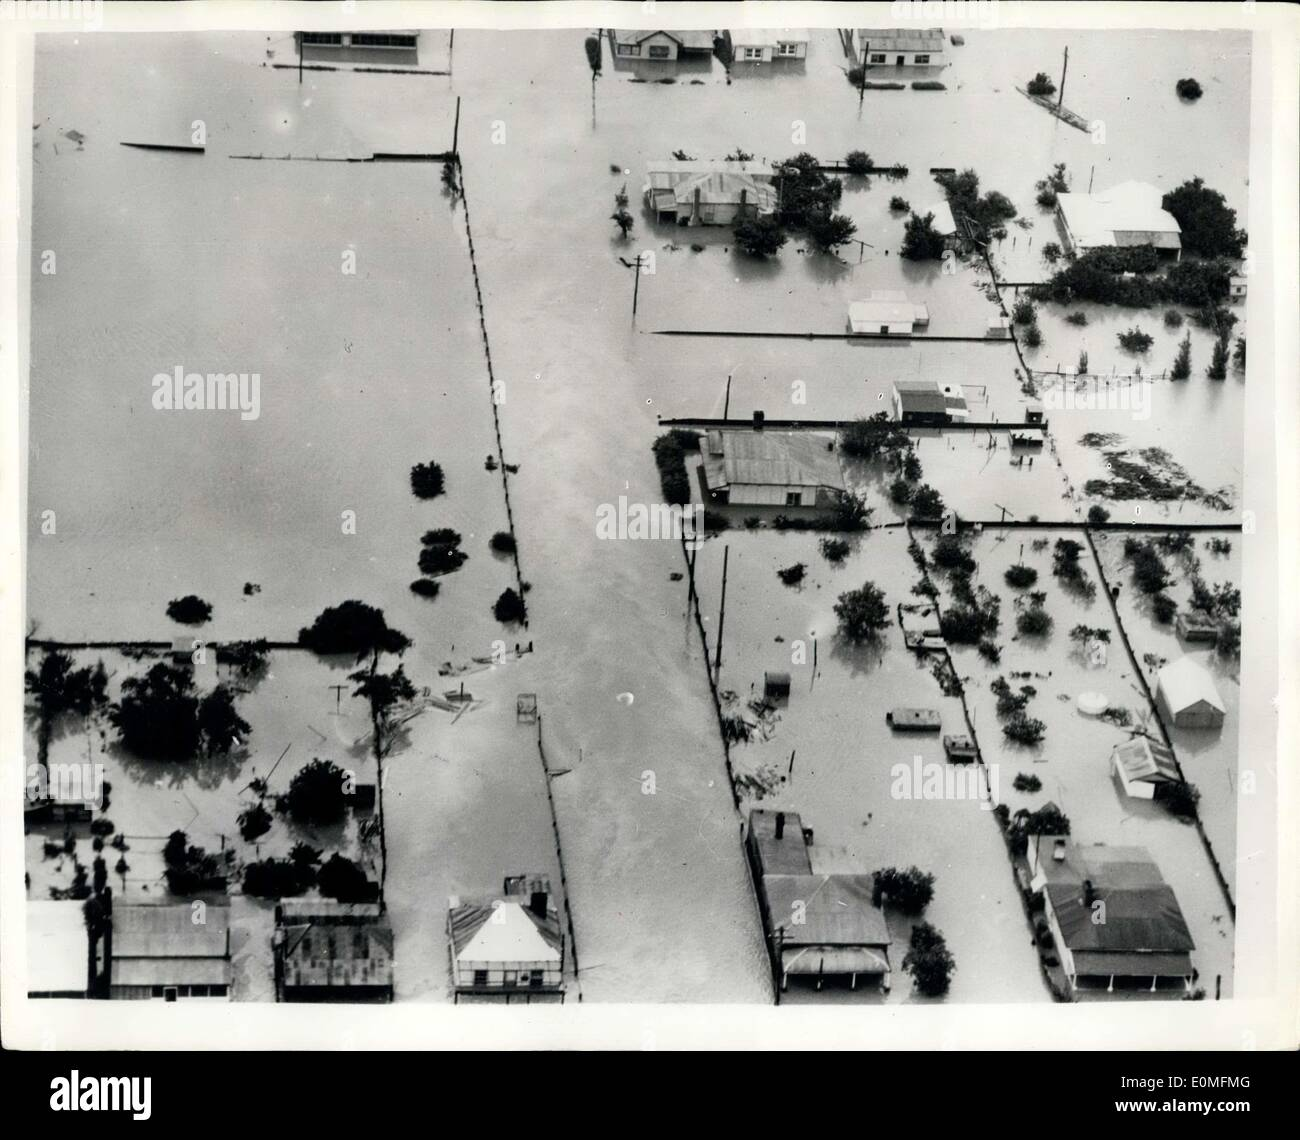 Mar. 03, 1955 - Disastrous Floods In New South Wales - Australia.: The scene from the air showing the desolation Stock Photo